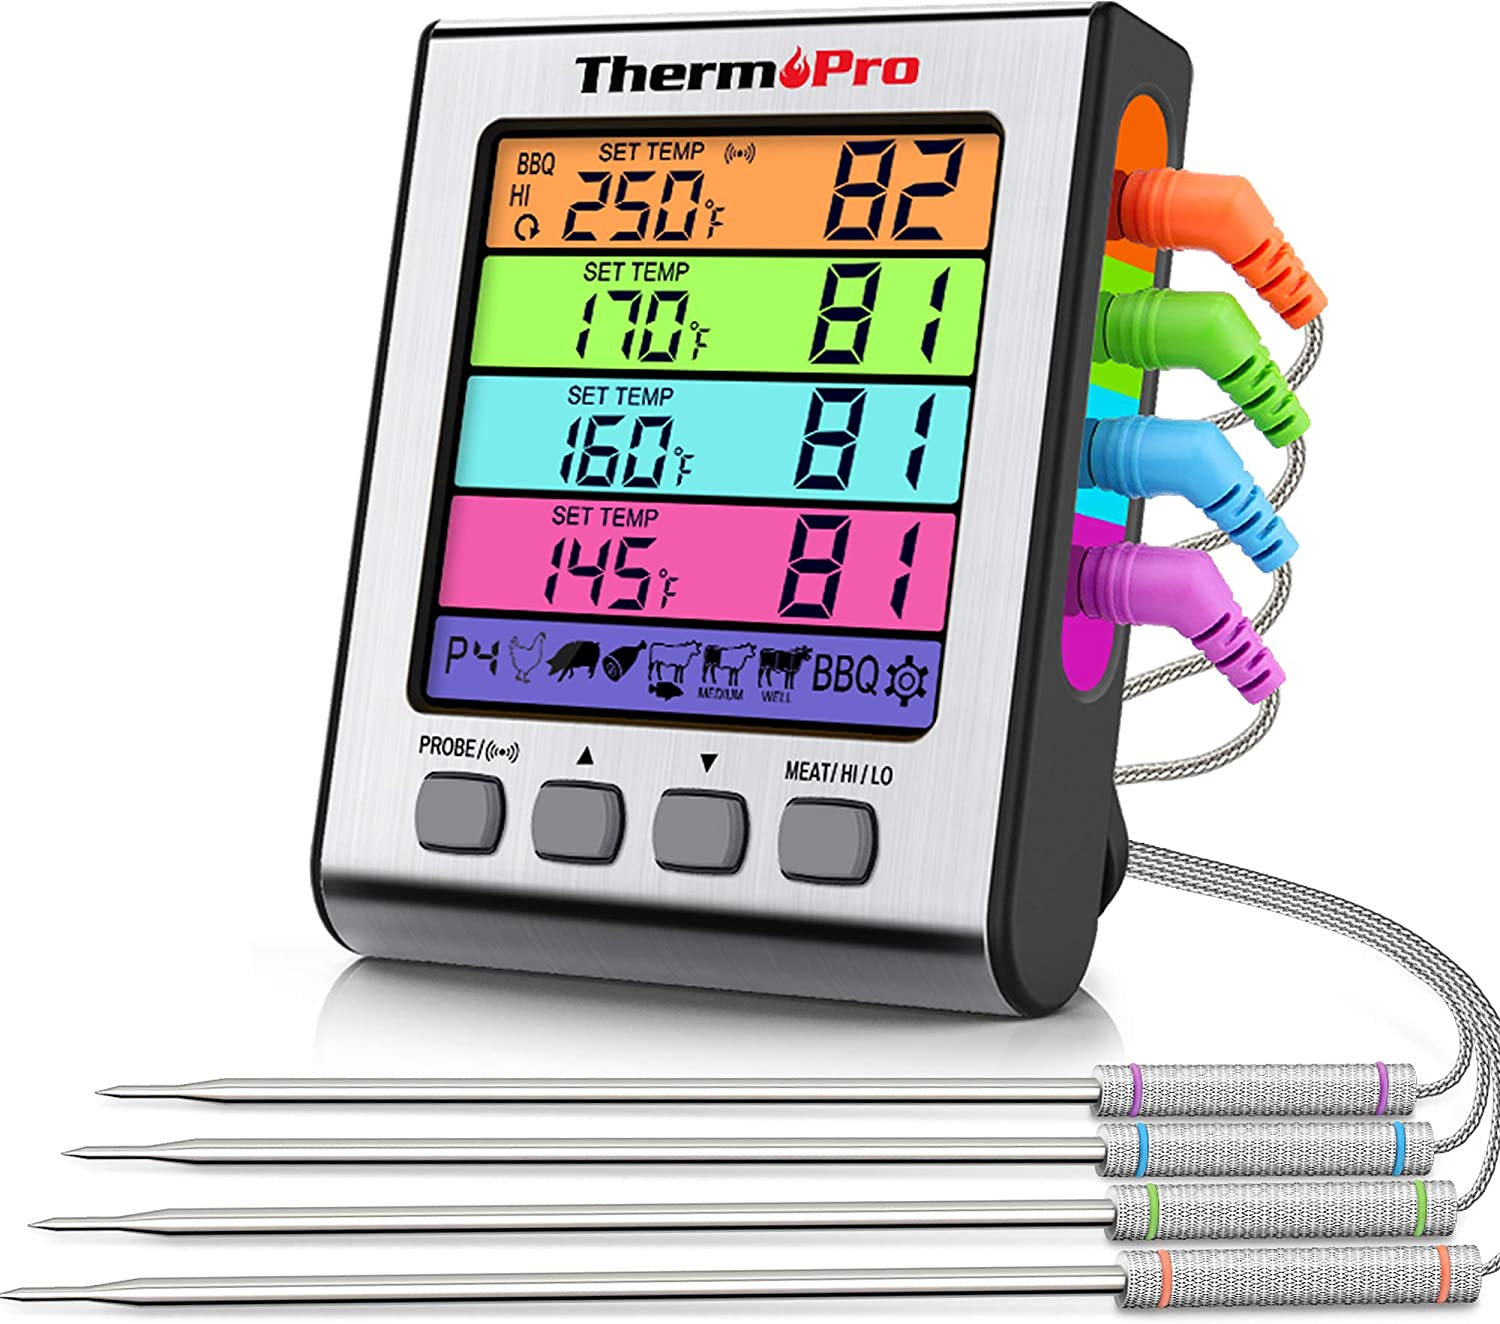 ThermoPro TP17H Meat Thermometer for Grilling and Smoking with 4 Temperature Probes for Beef Turkey Candy Deep Fry Cooking BBQ, Large, sliver